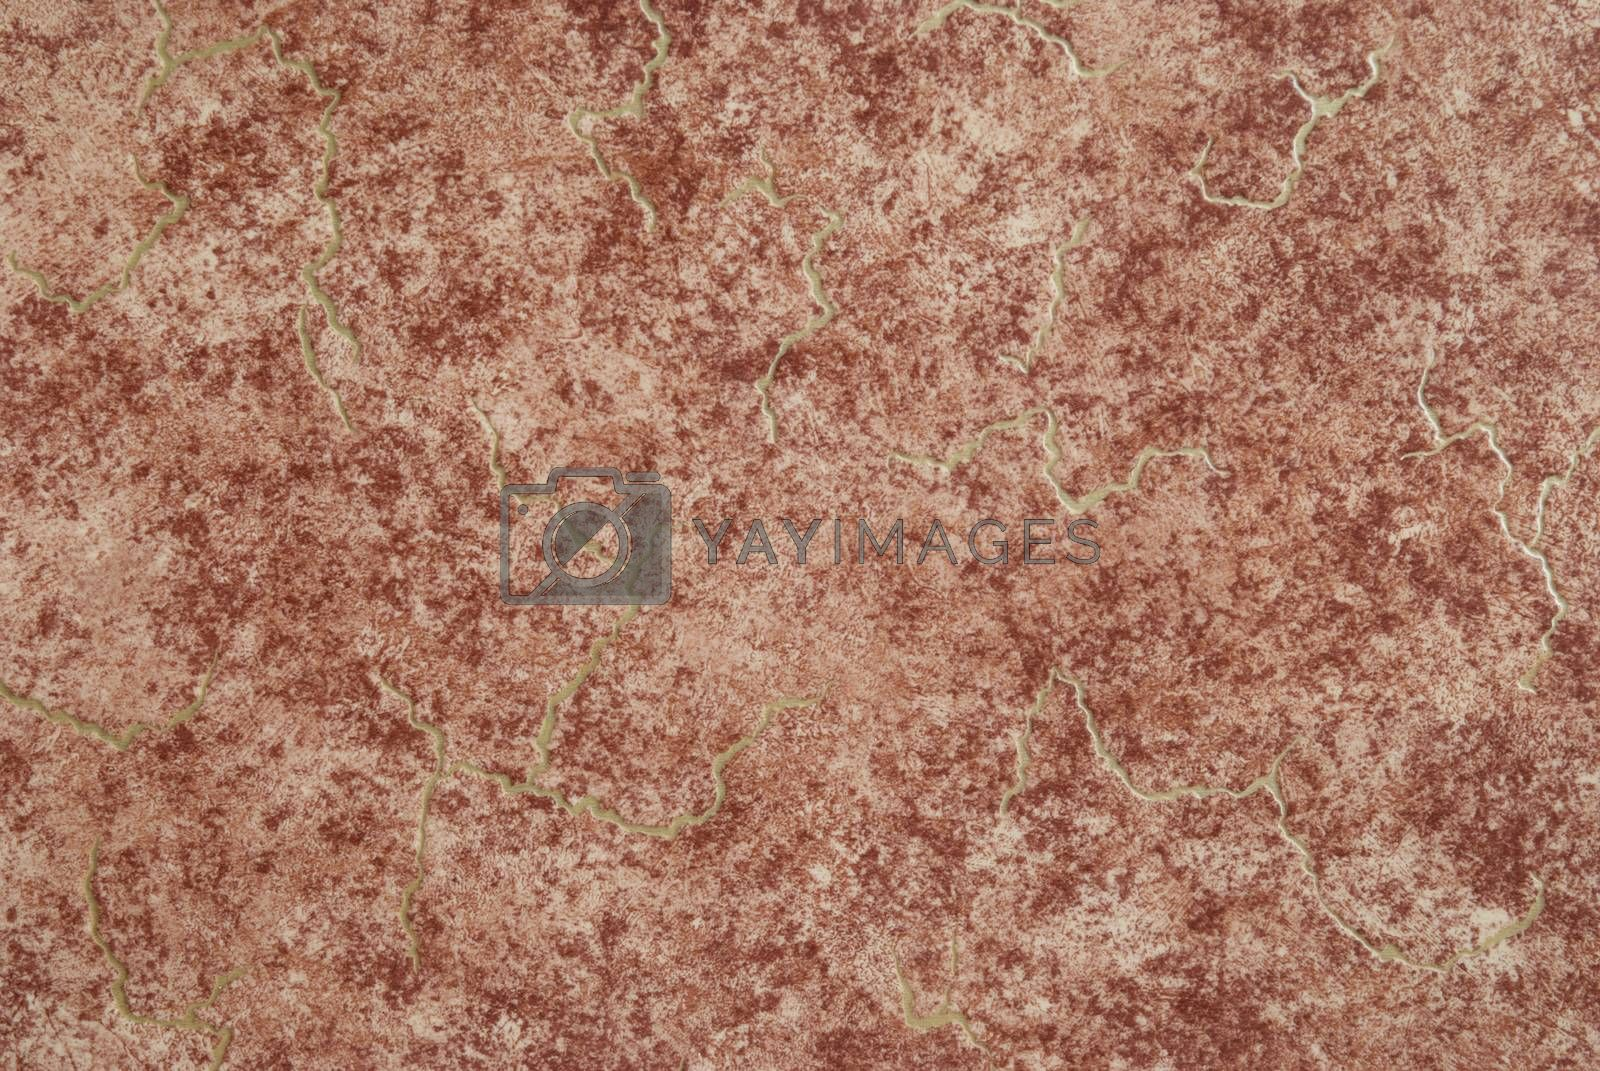 Abstract Red Marble Textured Surface For Background Royalty Free Stock Image Stock Photos Royalty Free Images Vectors Footage Yayimages